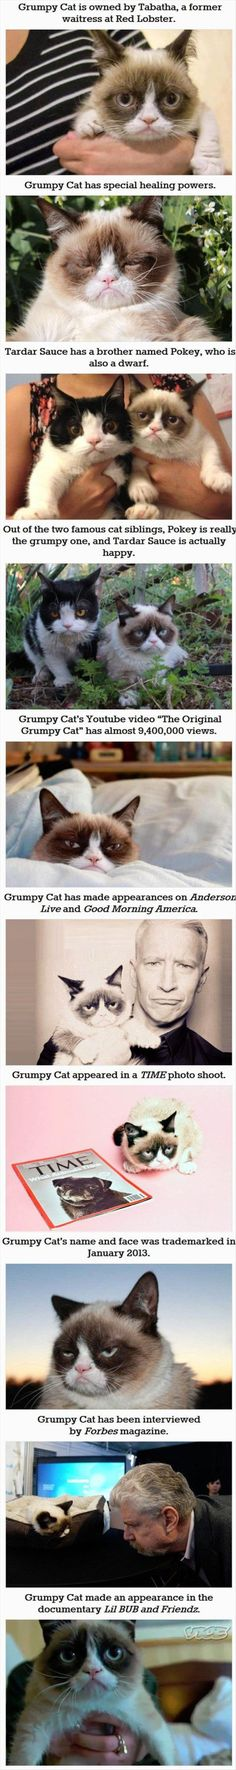 Grumpy cats story. He has a brother.